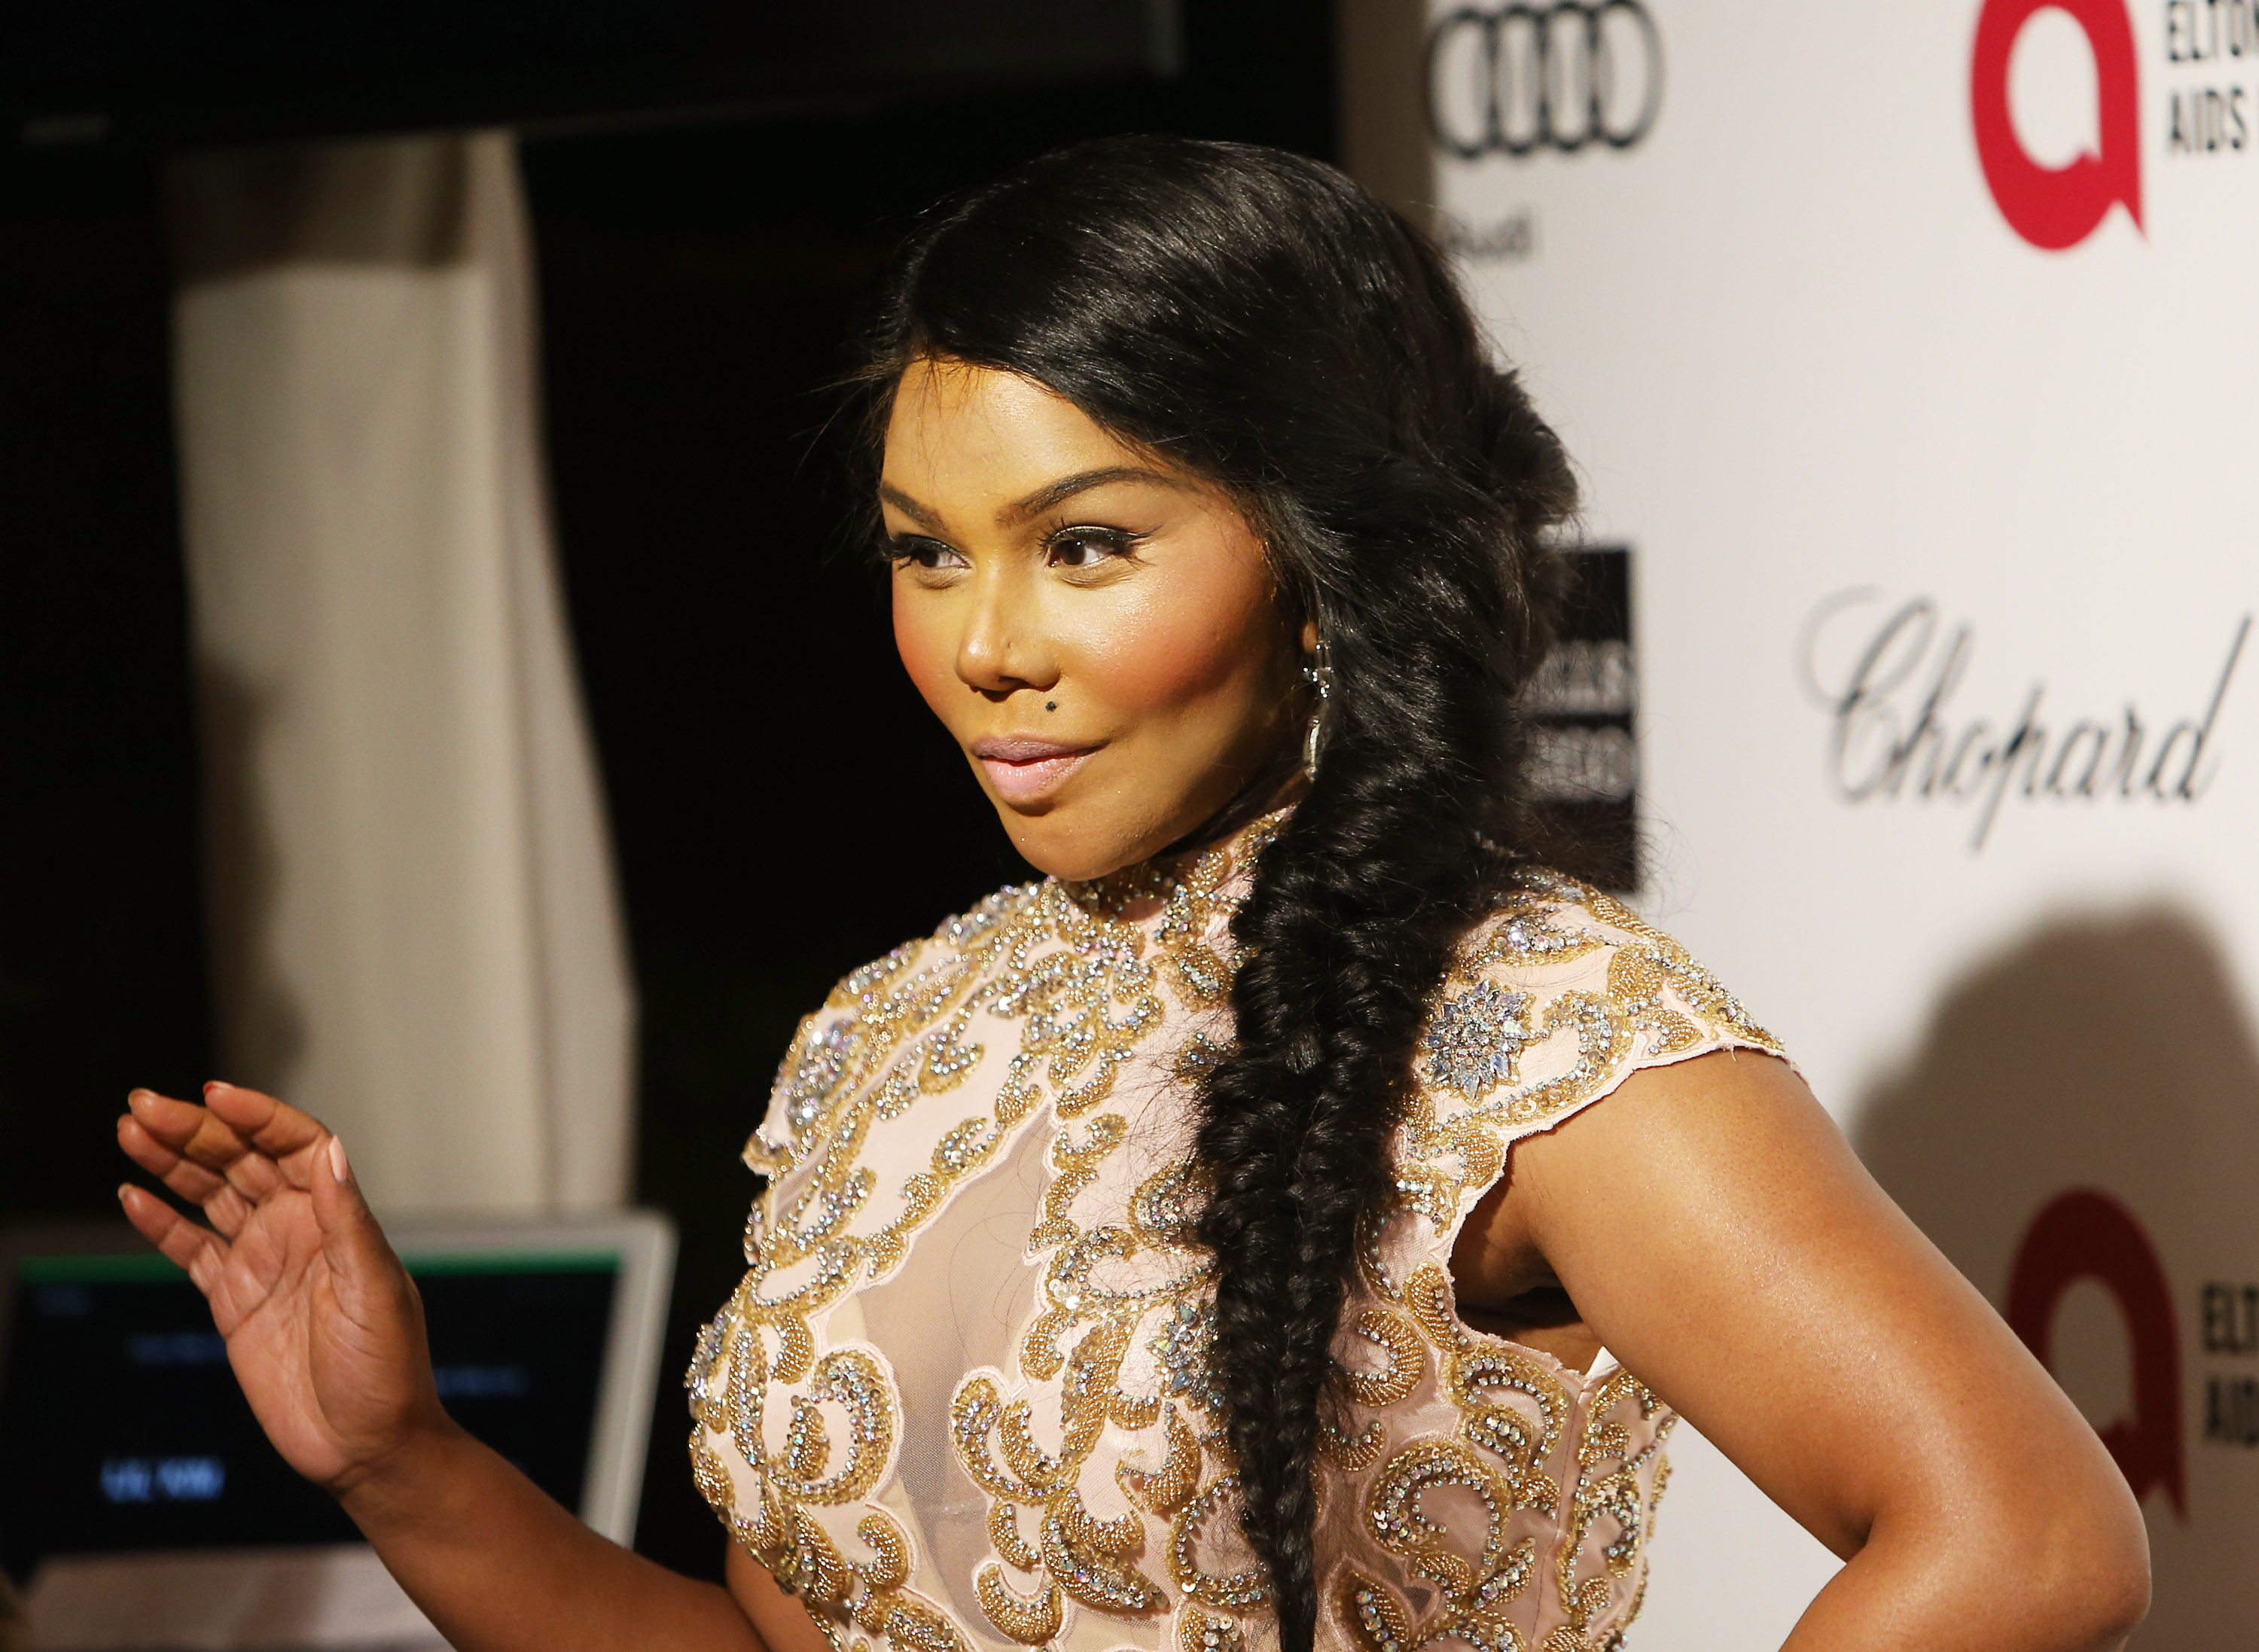 Lil' Kim Announces That Her New Album Is On The Way